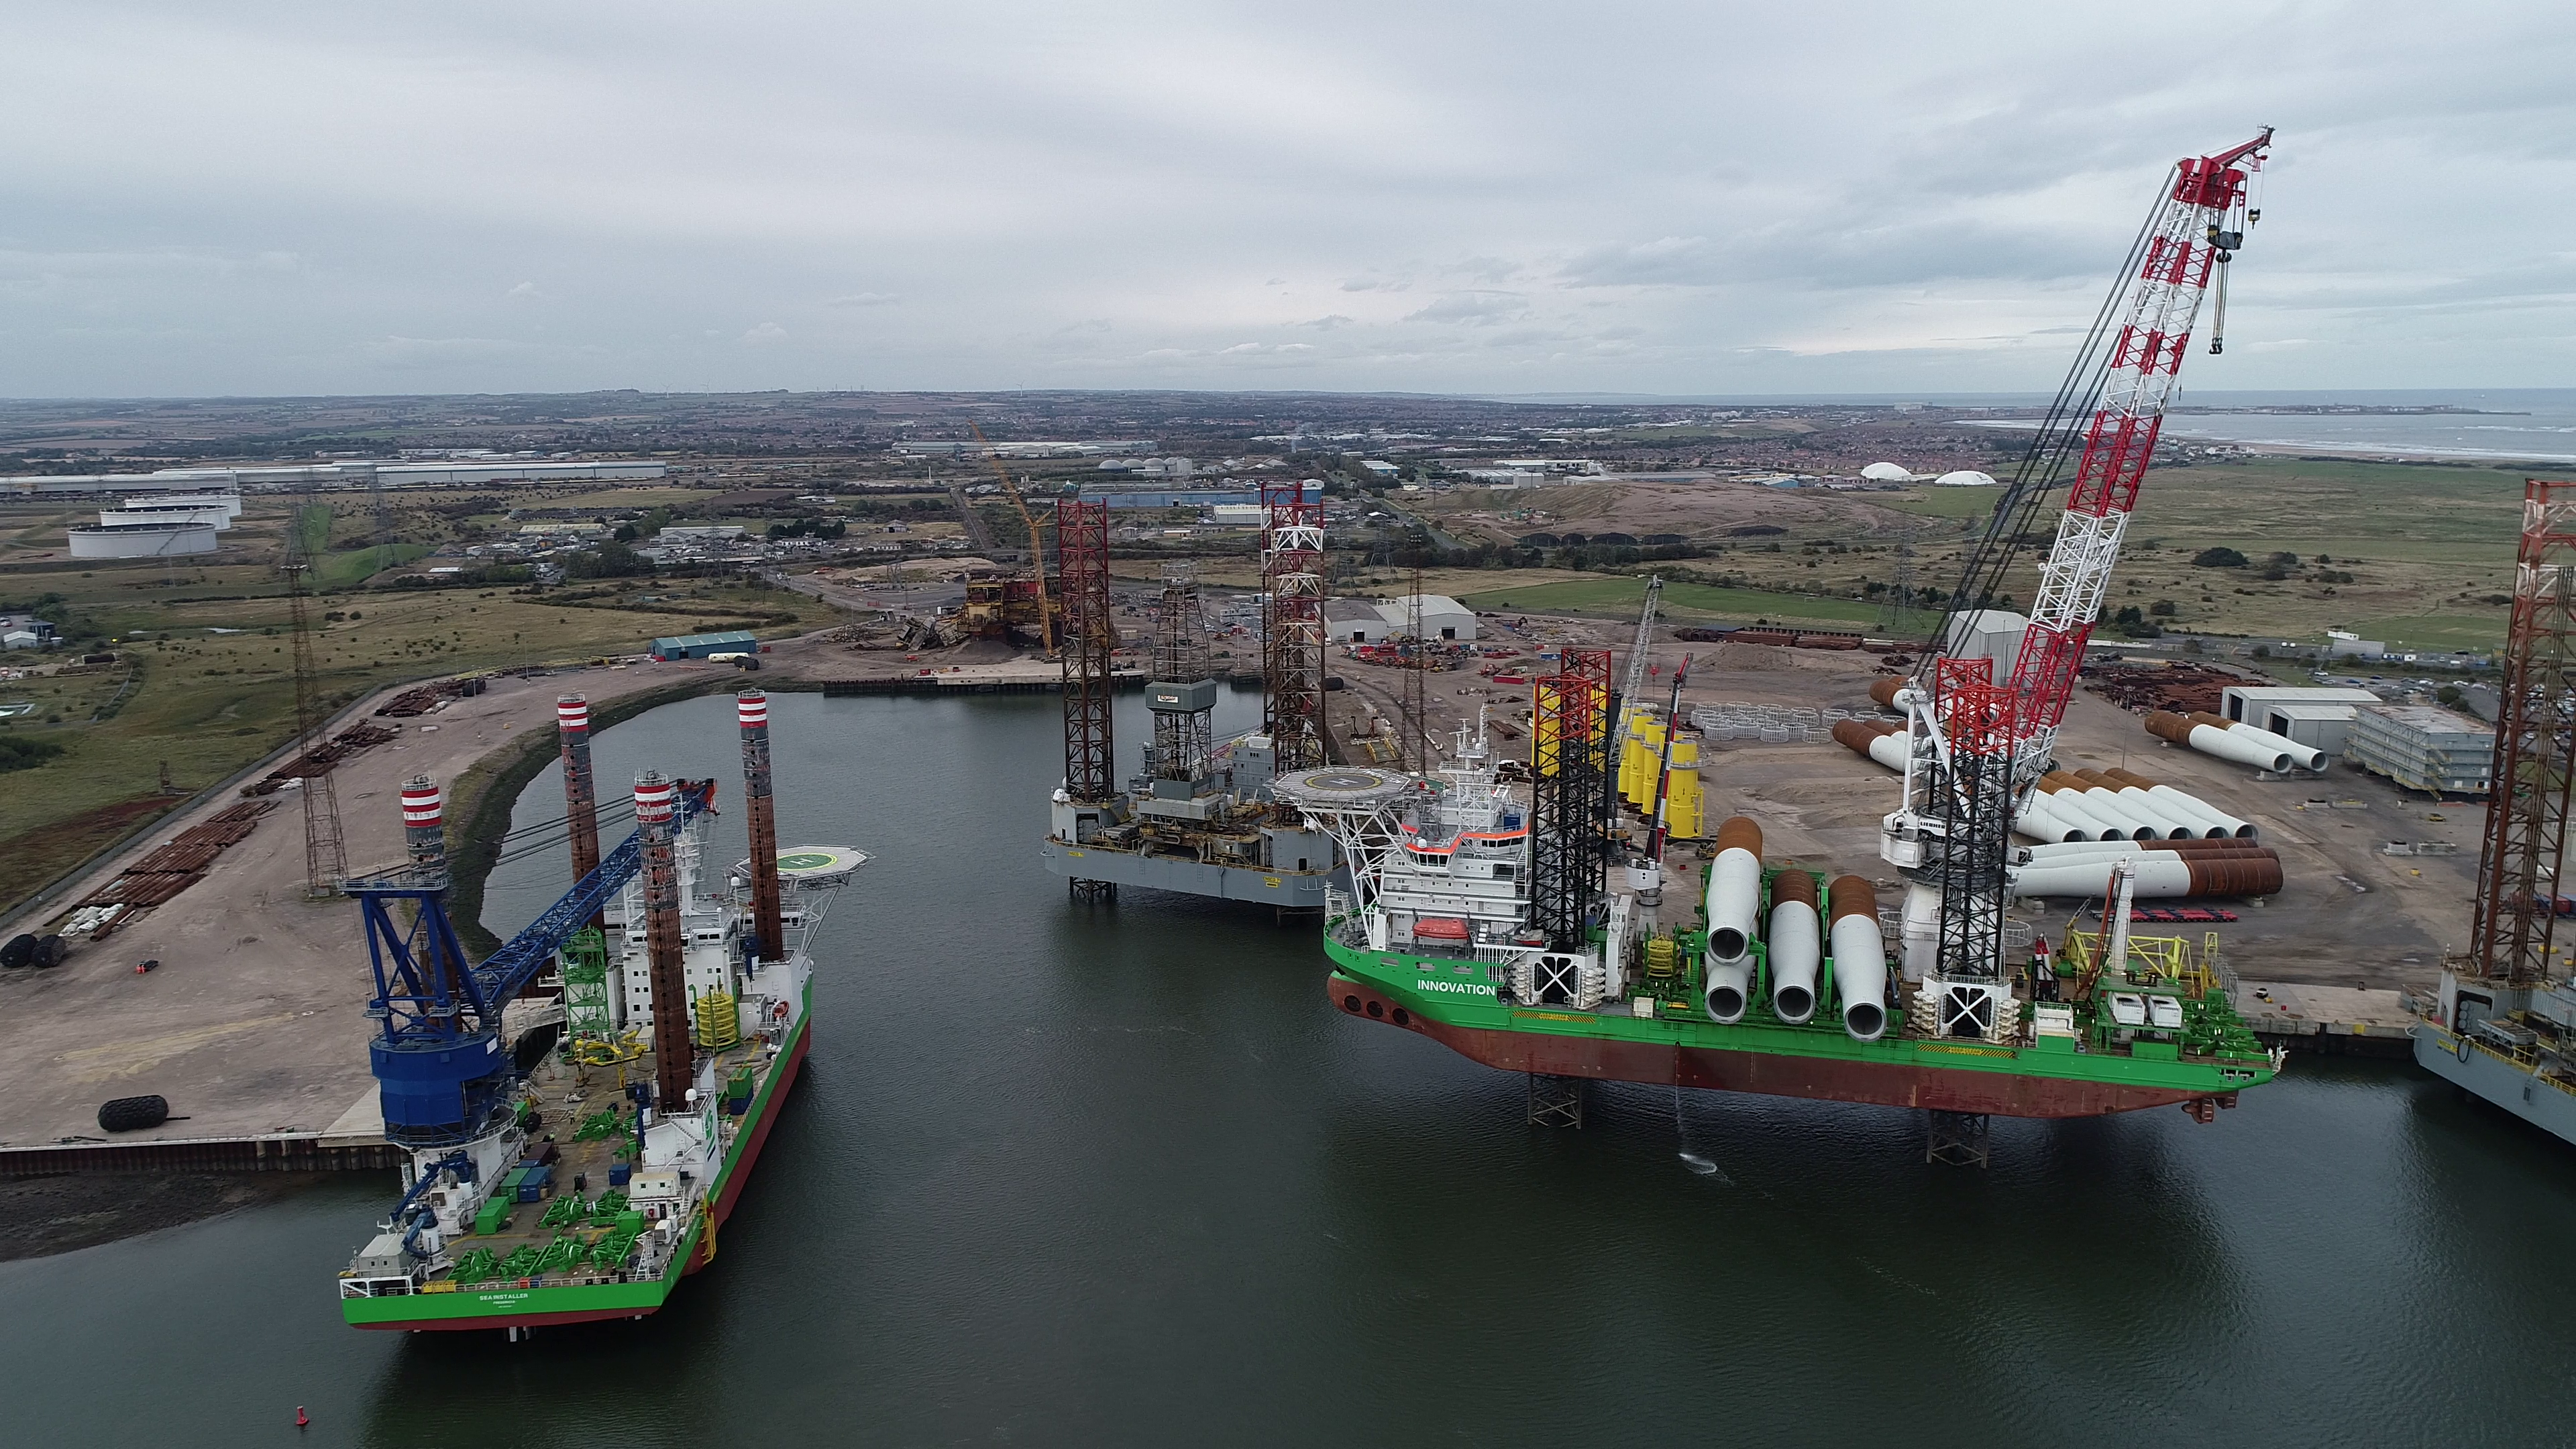 ASP - Hornsea Offshore Wind Farm Feeder Port 1st October 2018